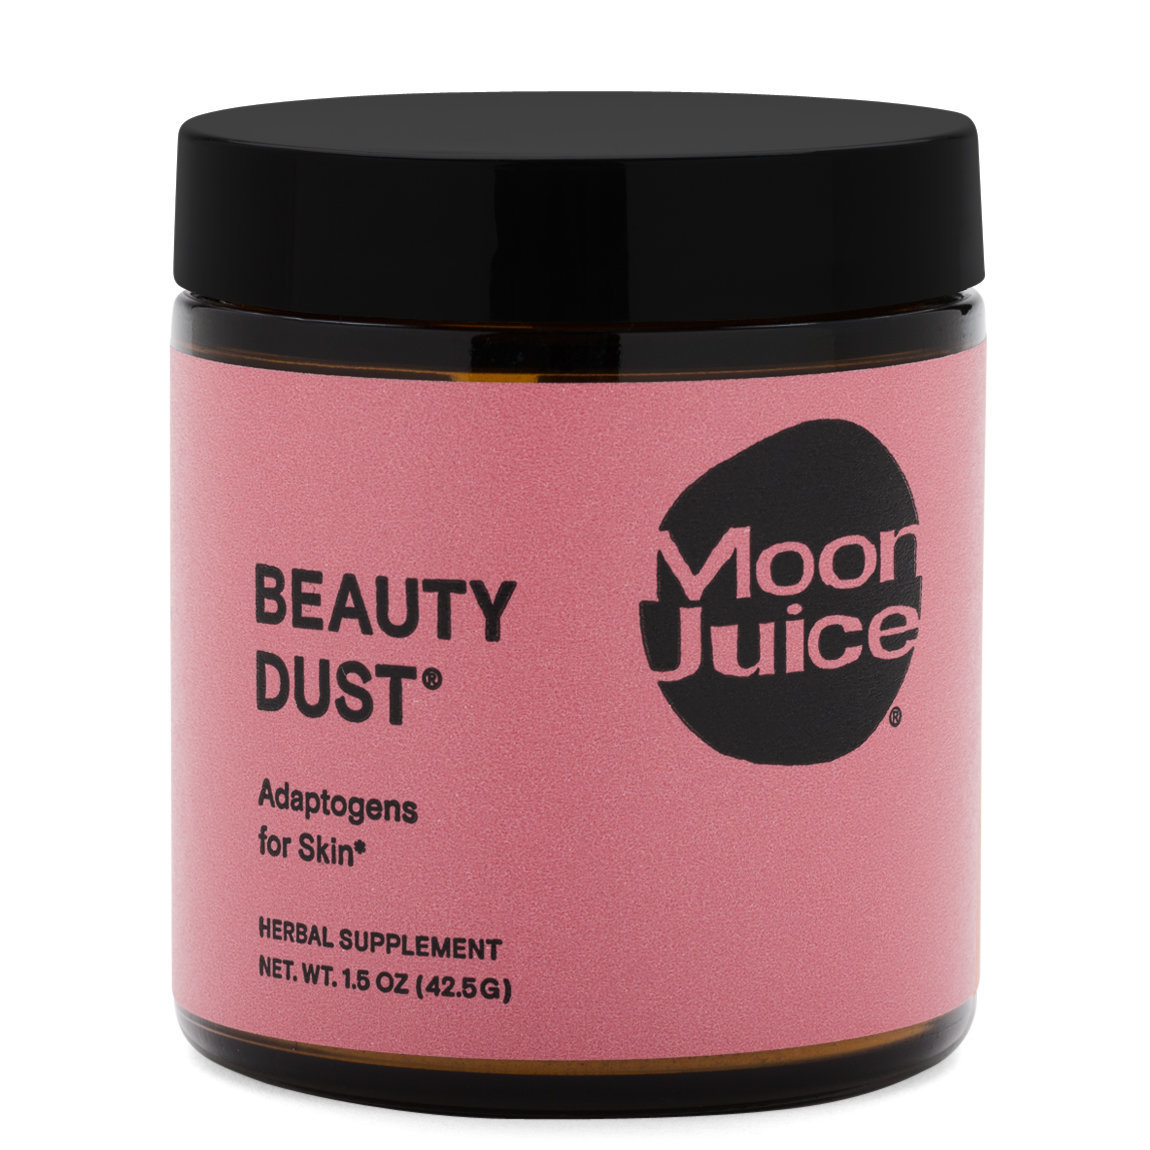 Moon Juice Beauty Dust product swatch.